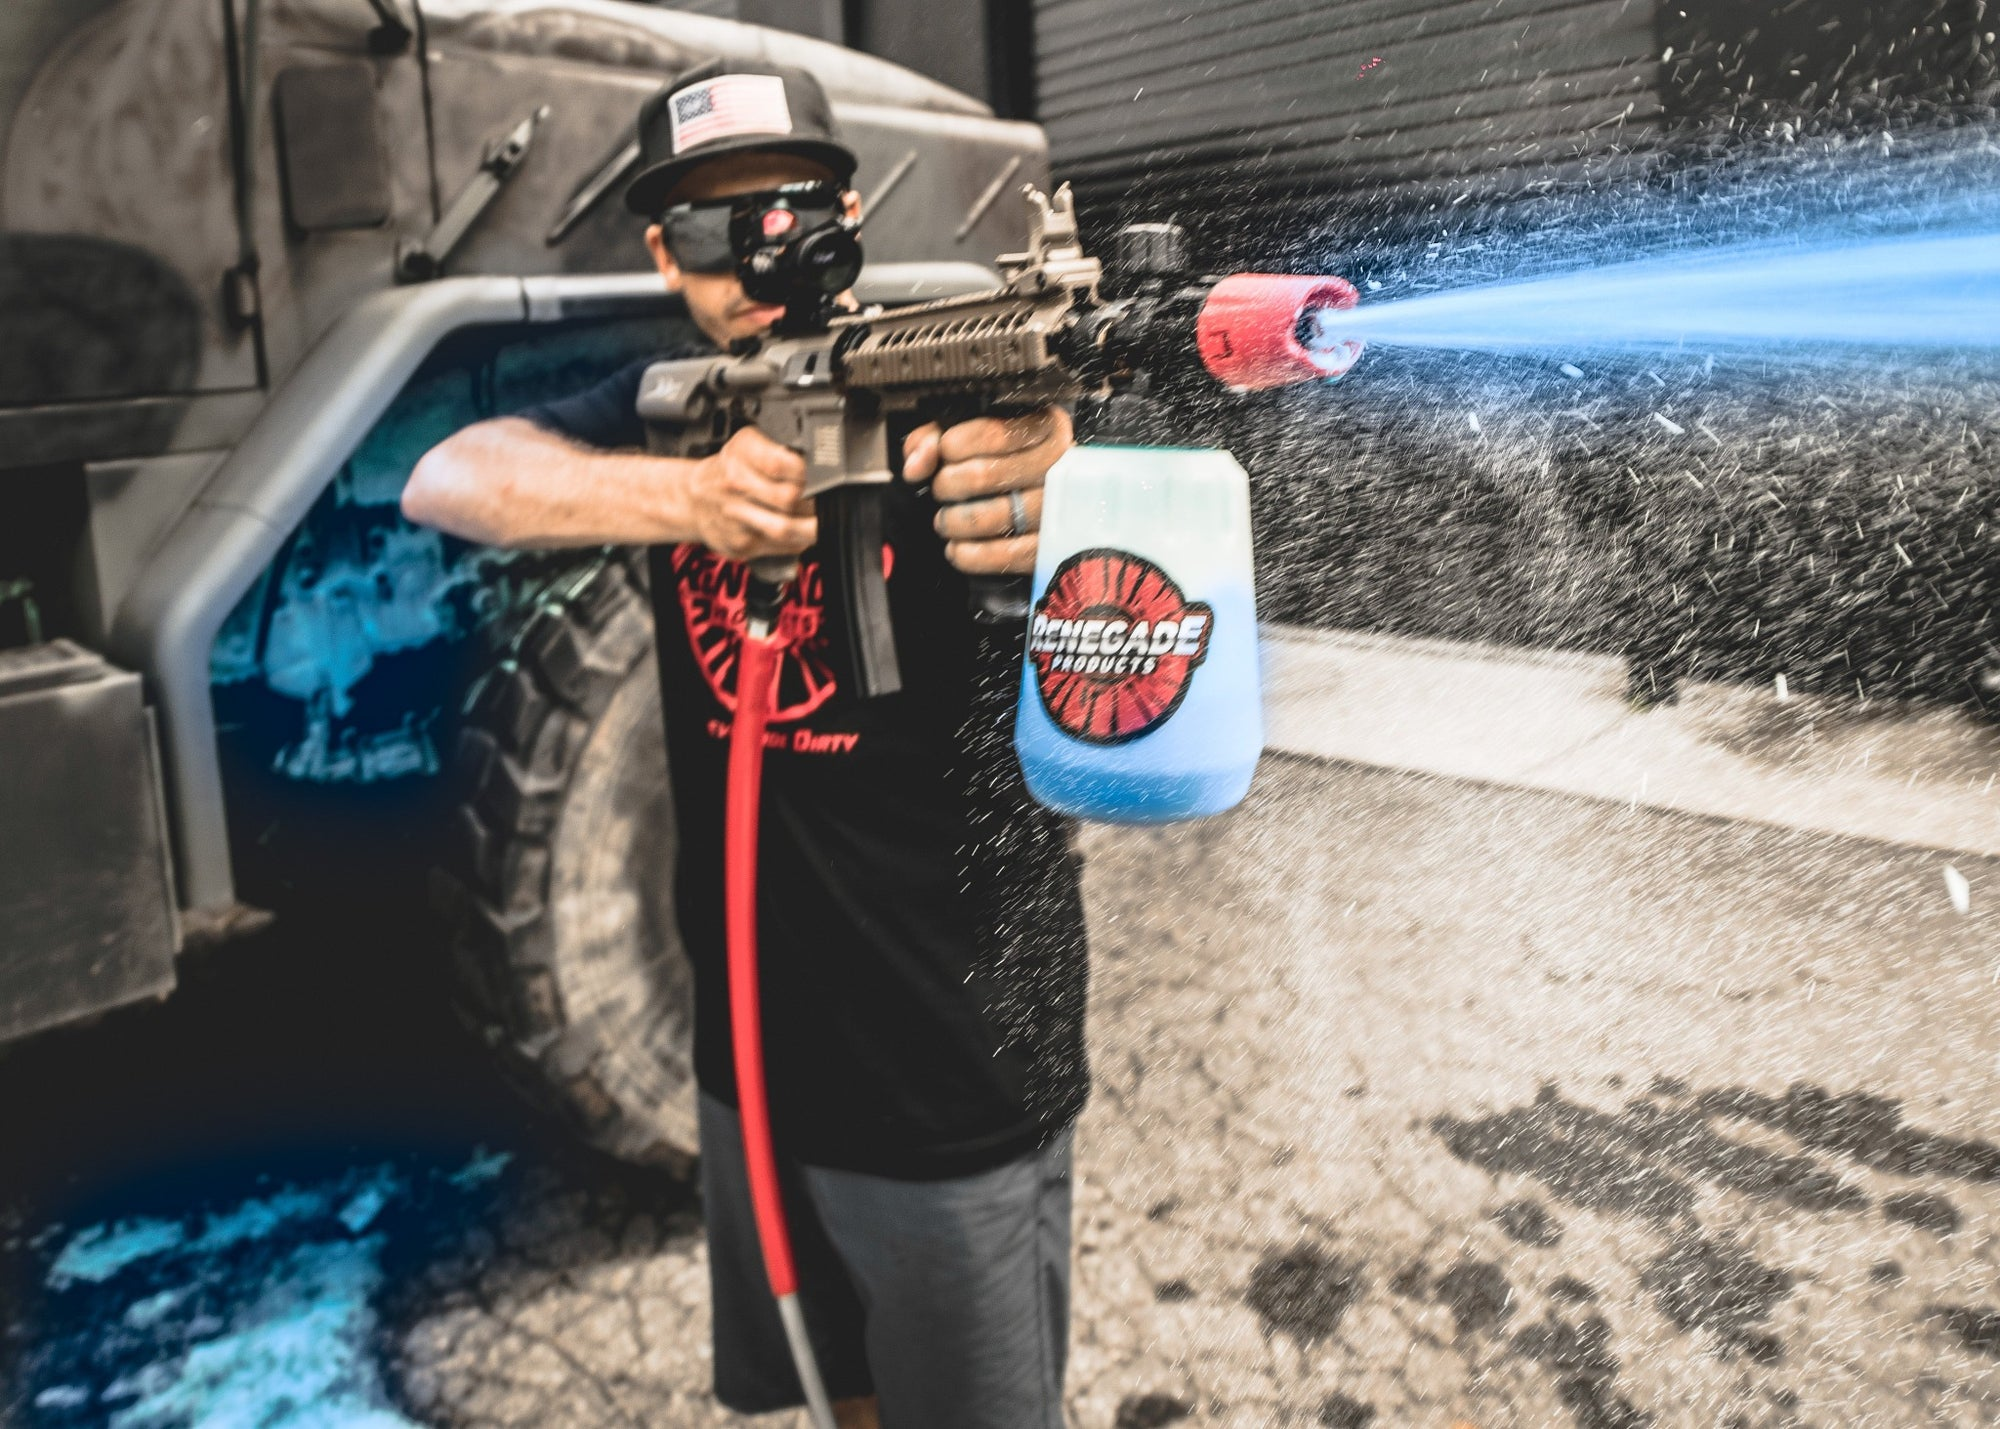 DeBerti AR-Foam Cannon pressure washer Limited Signature Series